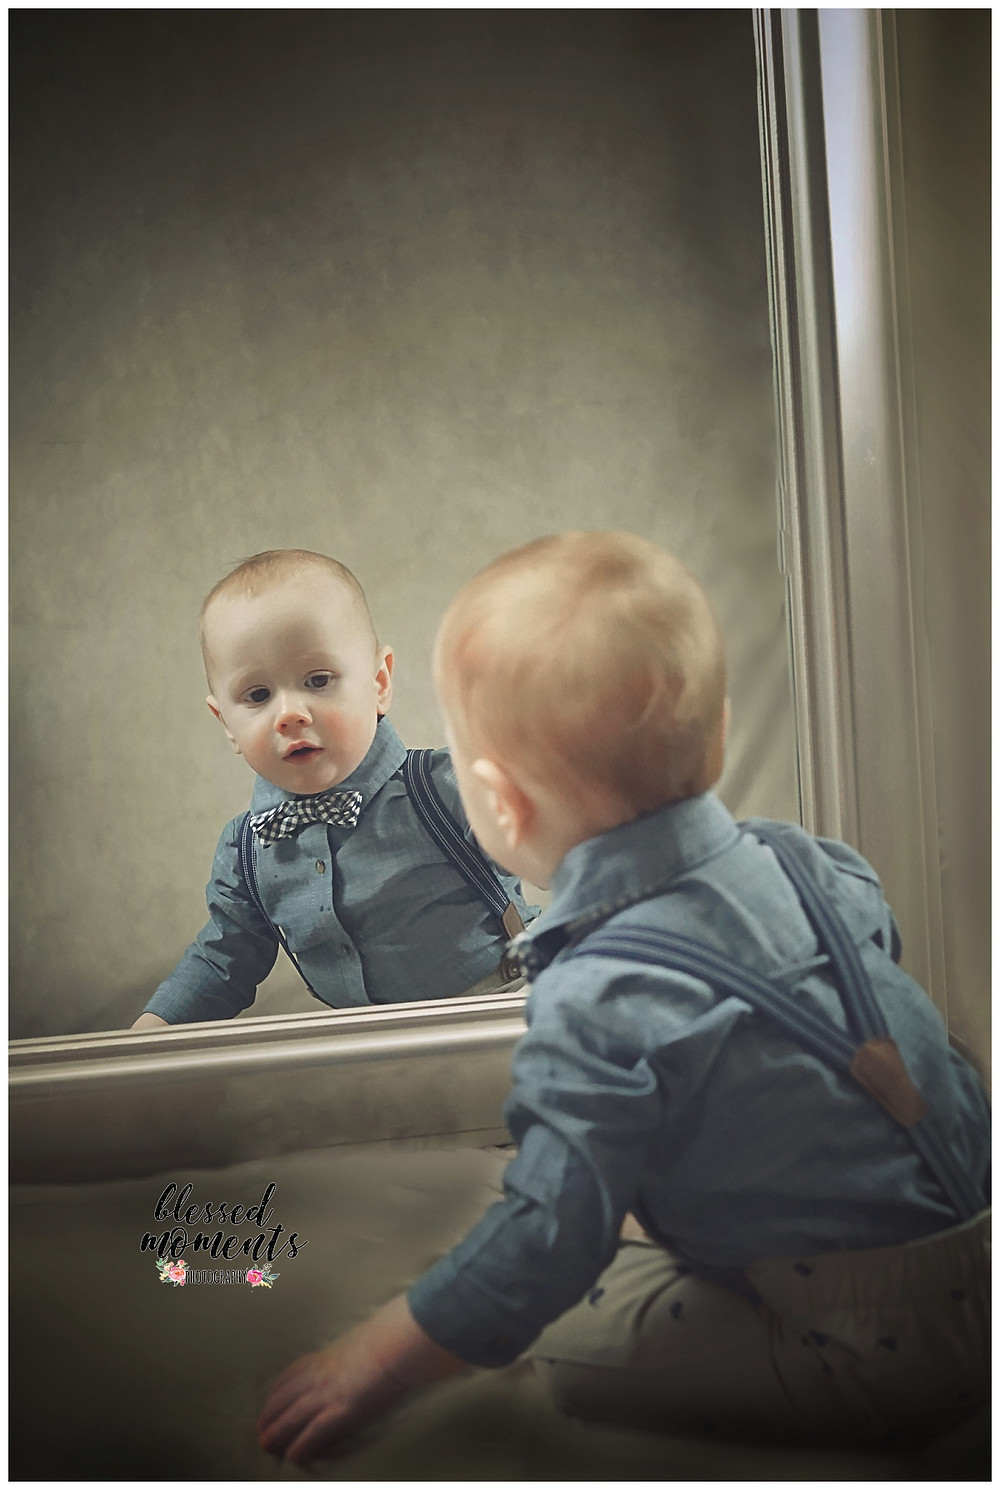 Photo of 1 year old boy looking at his reflection in the mirror.